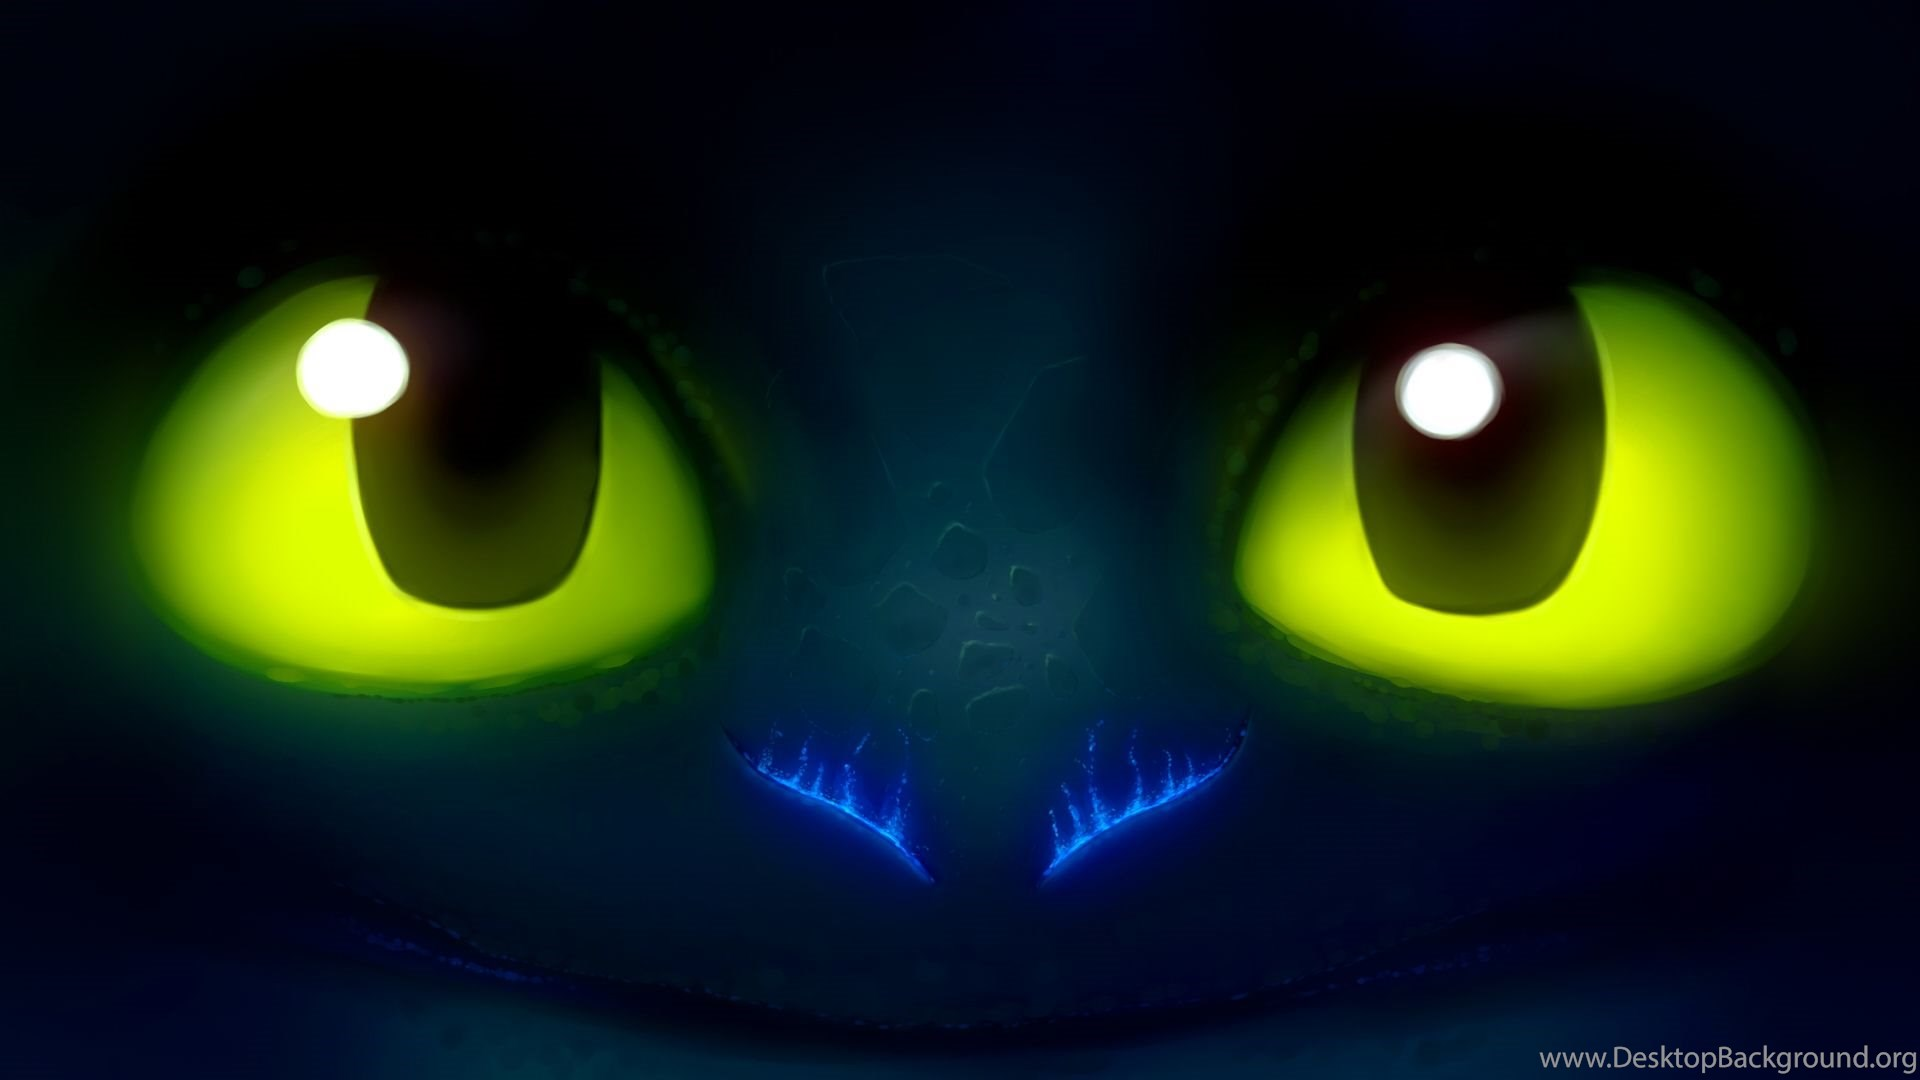 Toothless Wallpapers 1080p By Higemouse On Deviantart Desktop Background